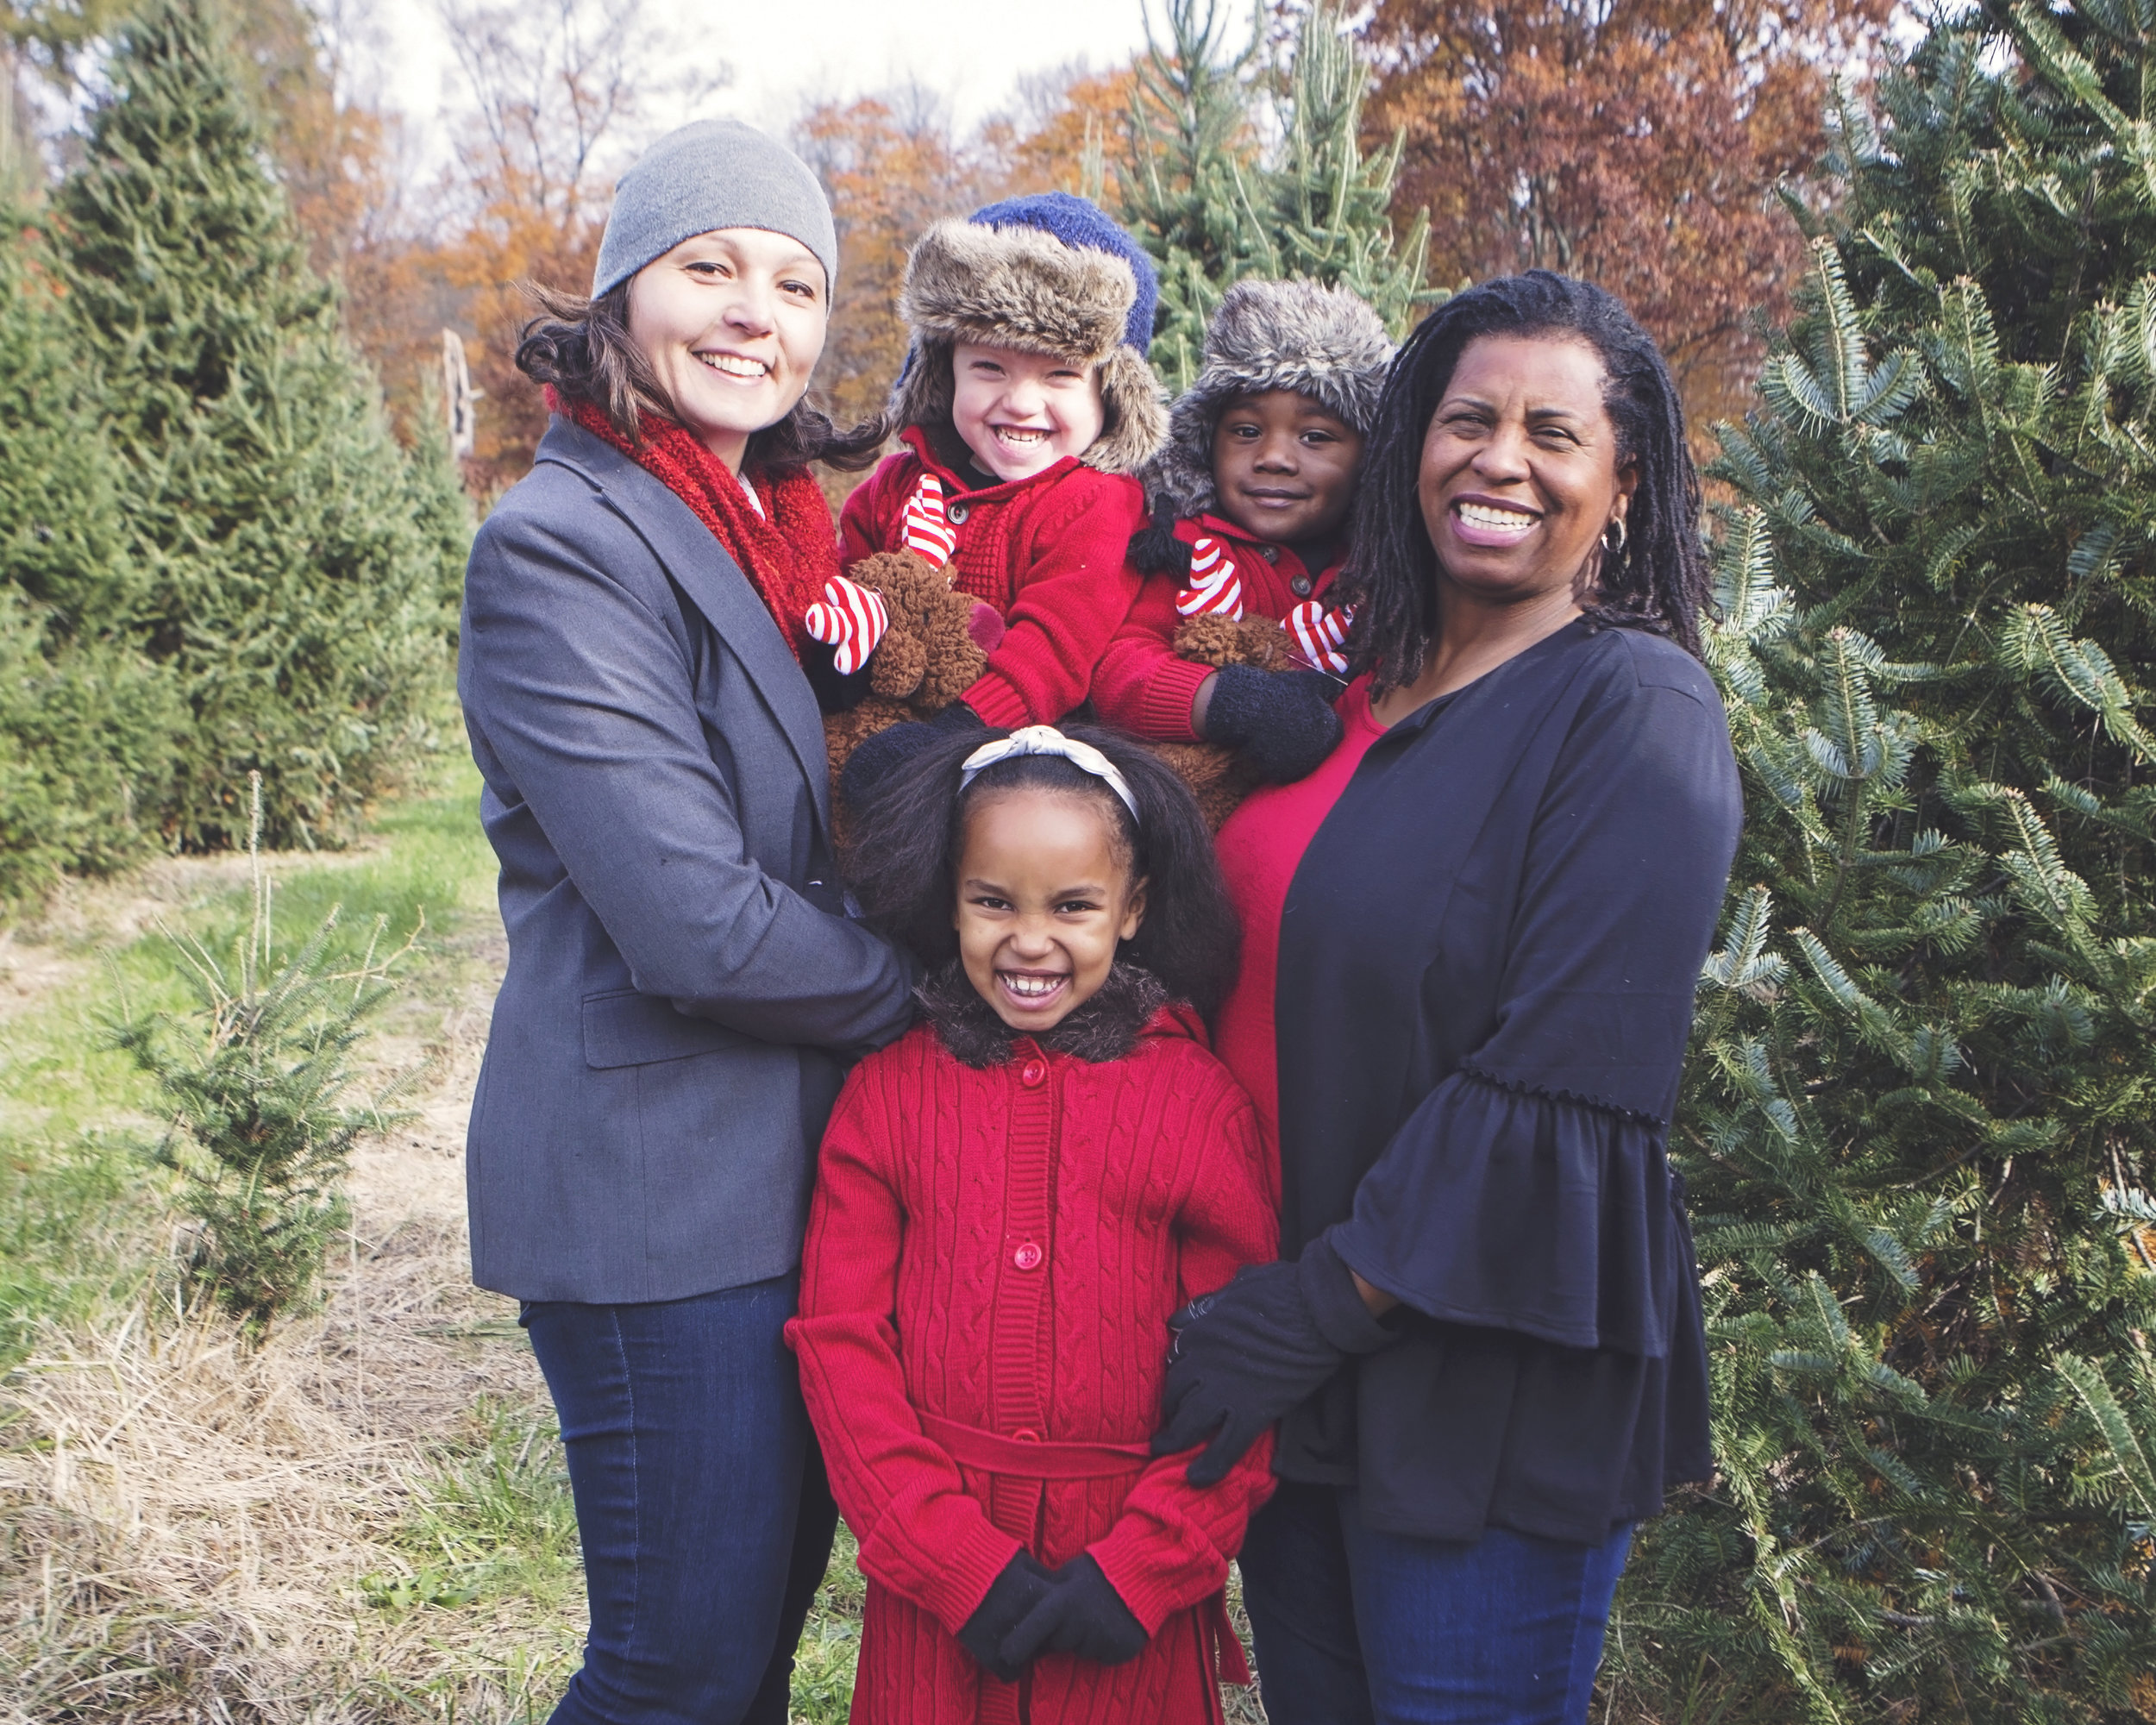 Angela Easton left, and her family, wife, Theresa, and kids Clayton, Benit and Delilah, had lots of support from family and neighbors after Angela's kidney donation surgery.